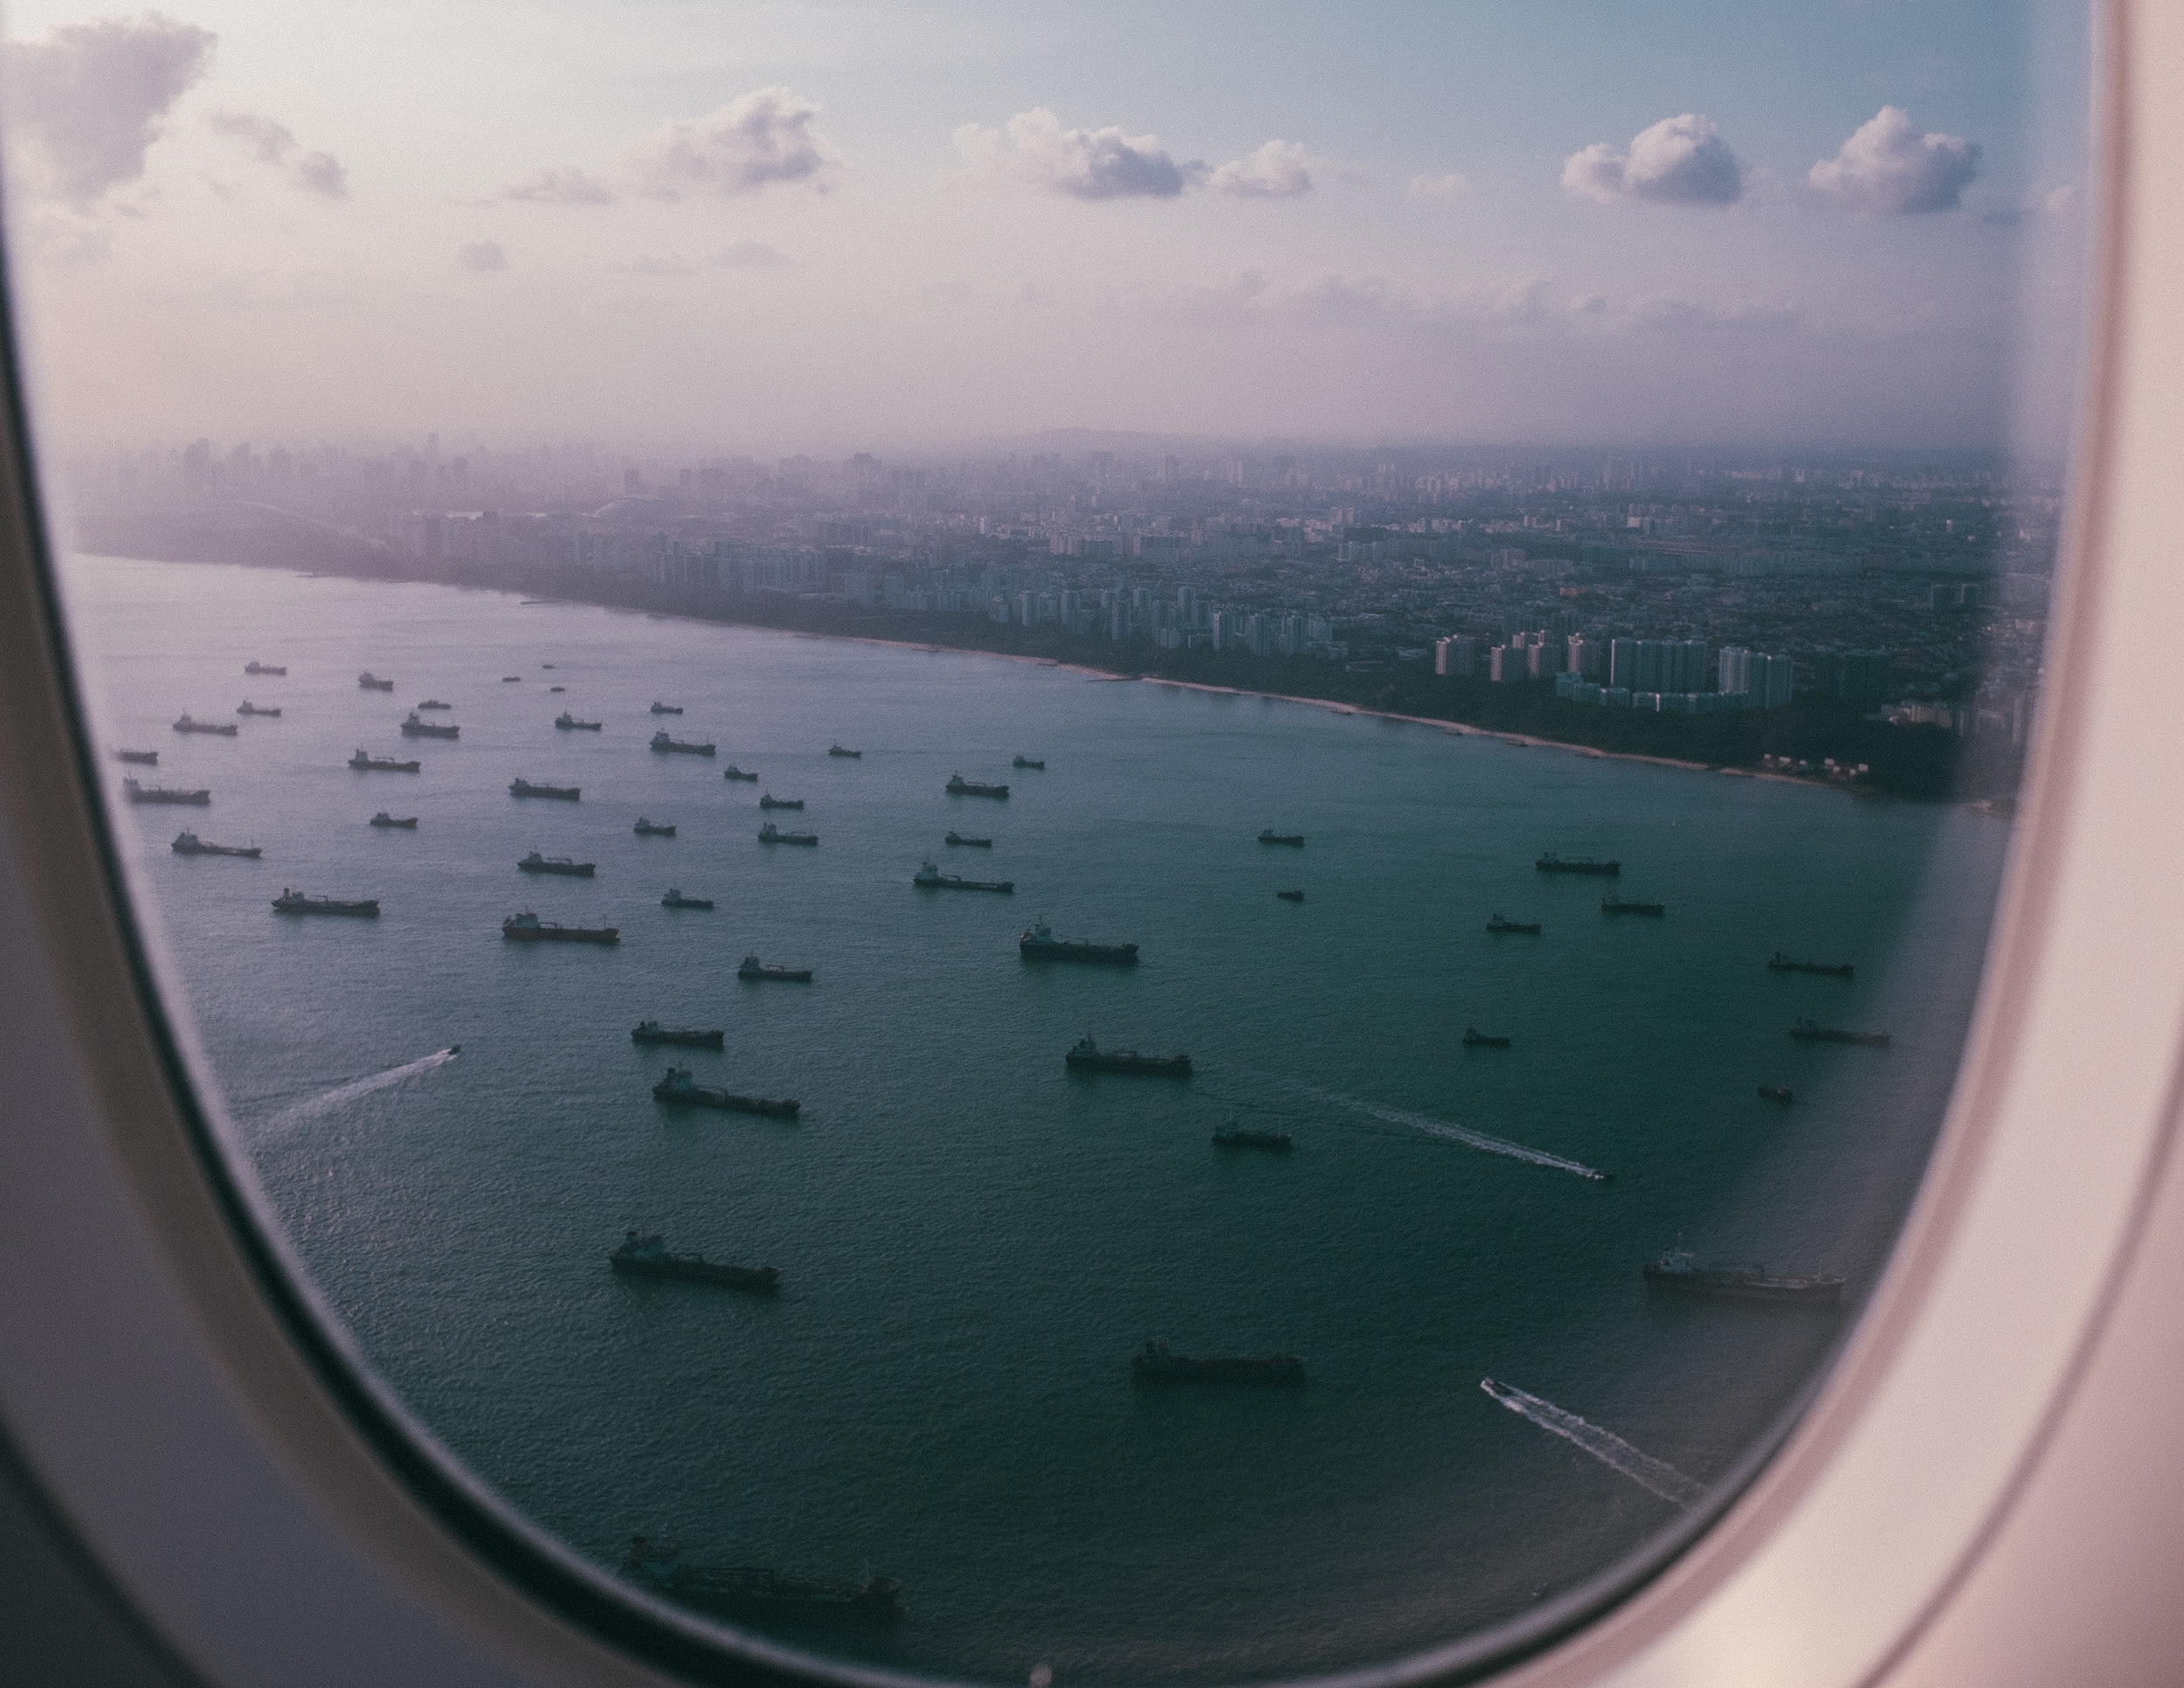 Arriving into Singapore...